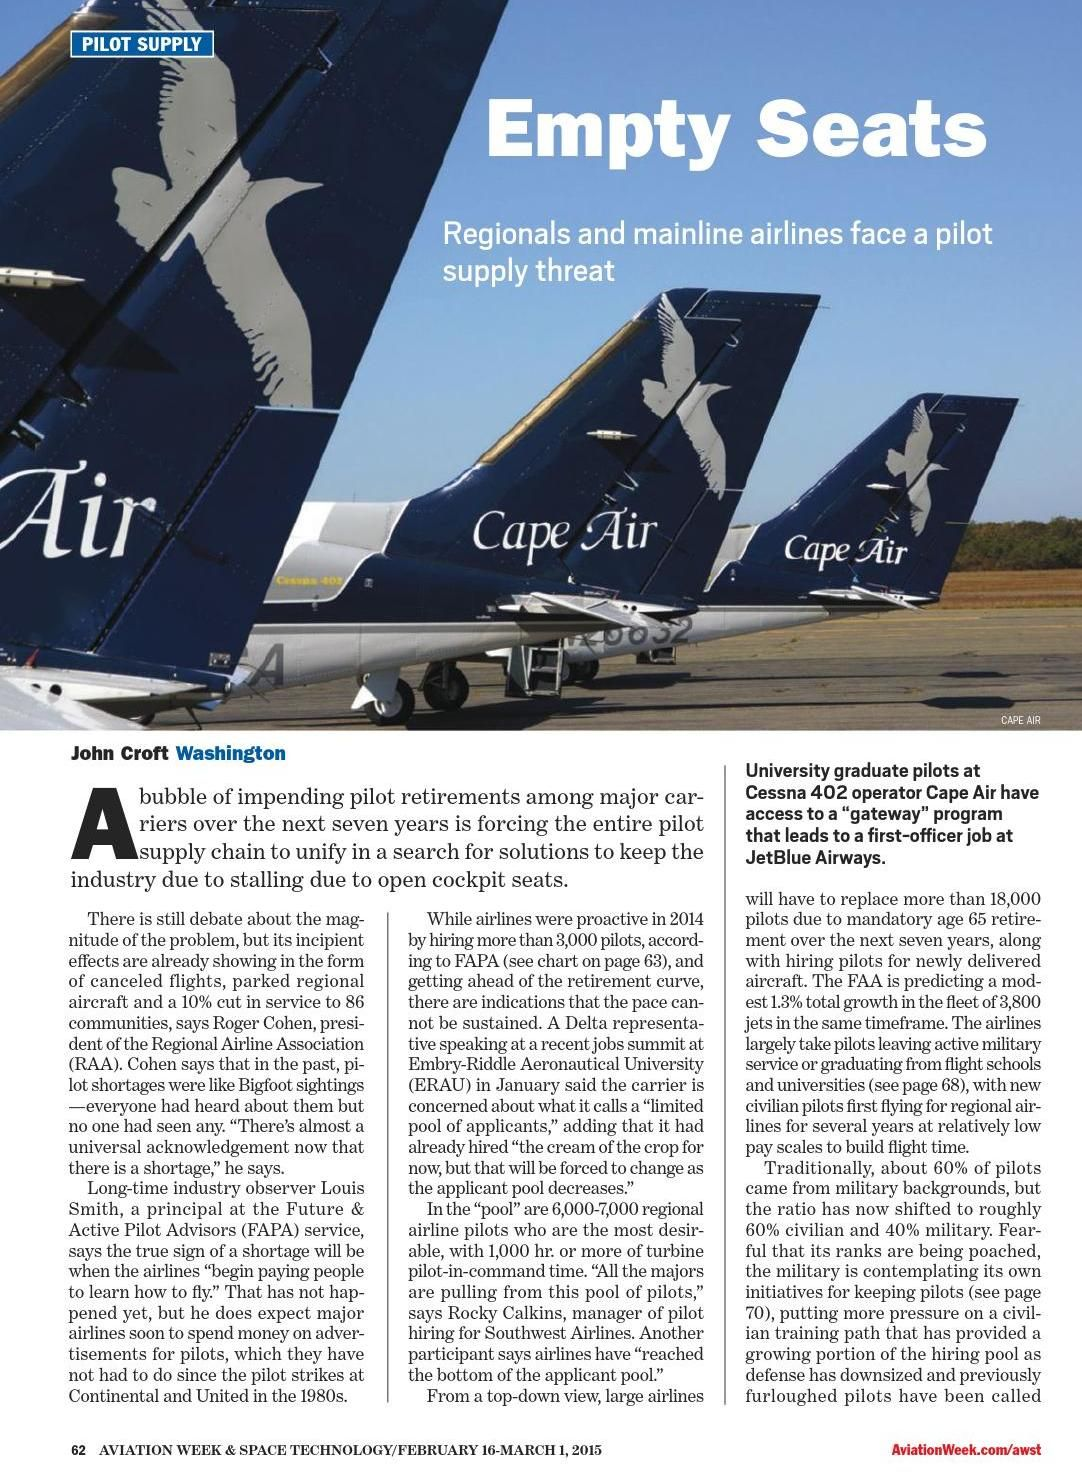 Aviation Week Space Technology N 3 16 February 2015 Clippedonissuu Vintage Airlines Airline Travel Aviation